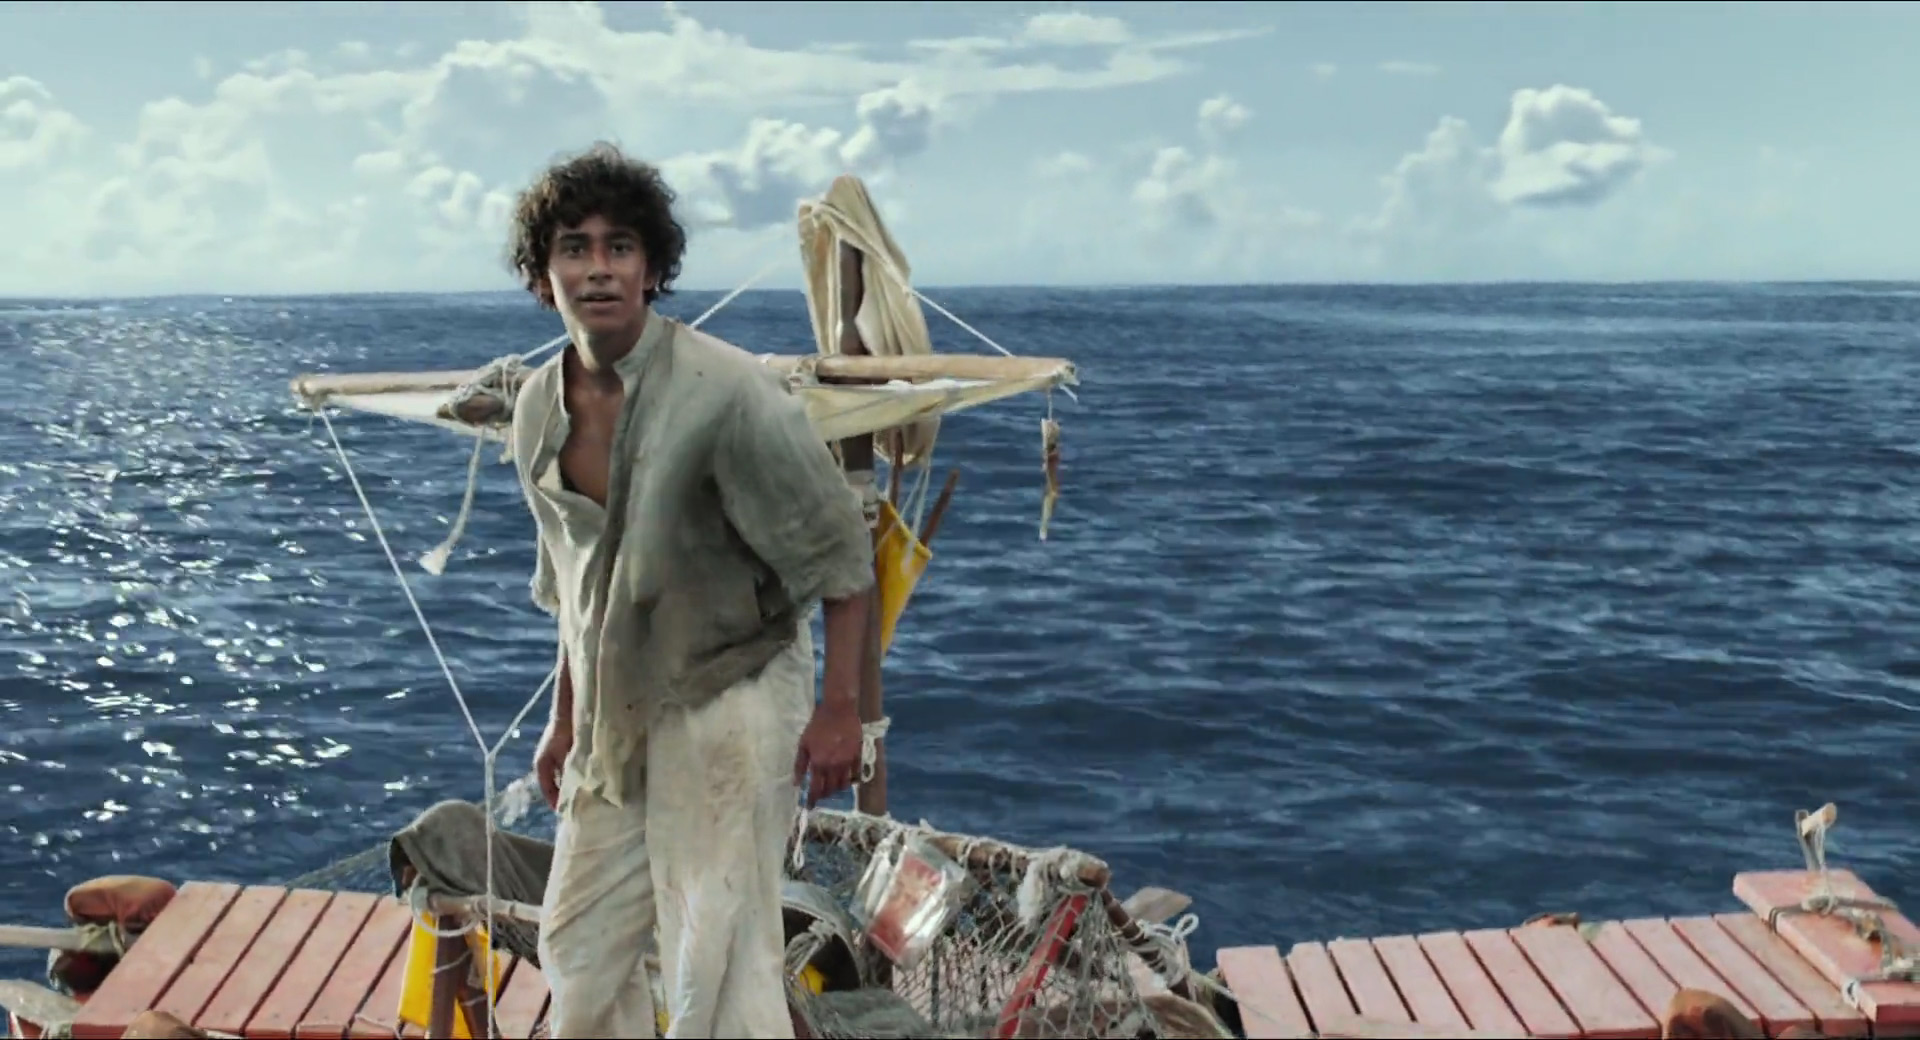 The whimsical world of film bluebirdyblog for Life of pi characterization